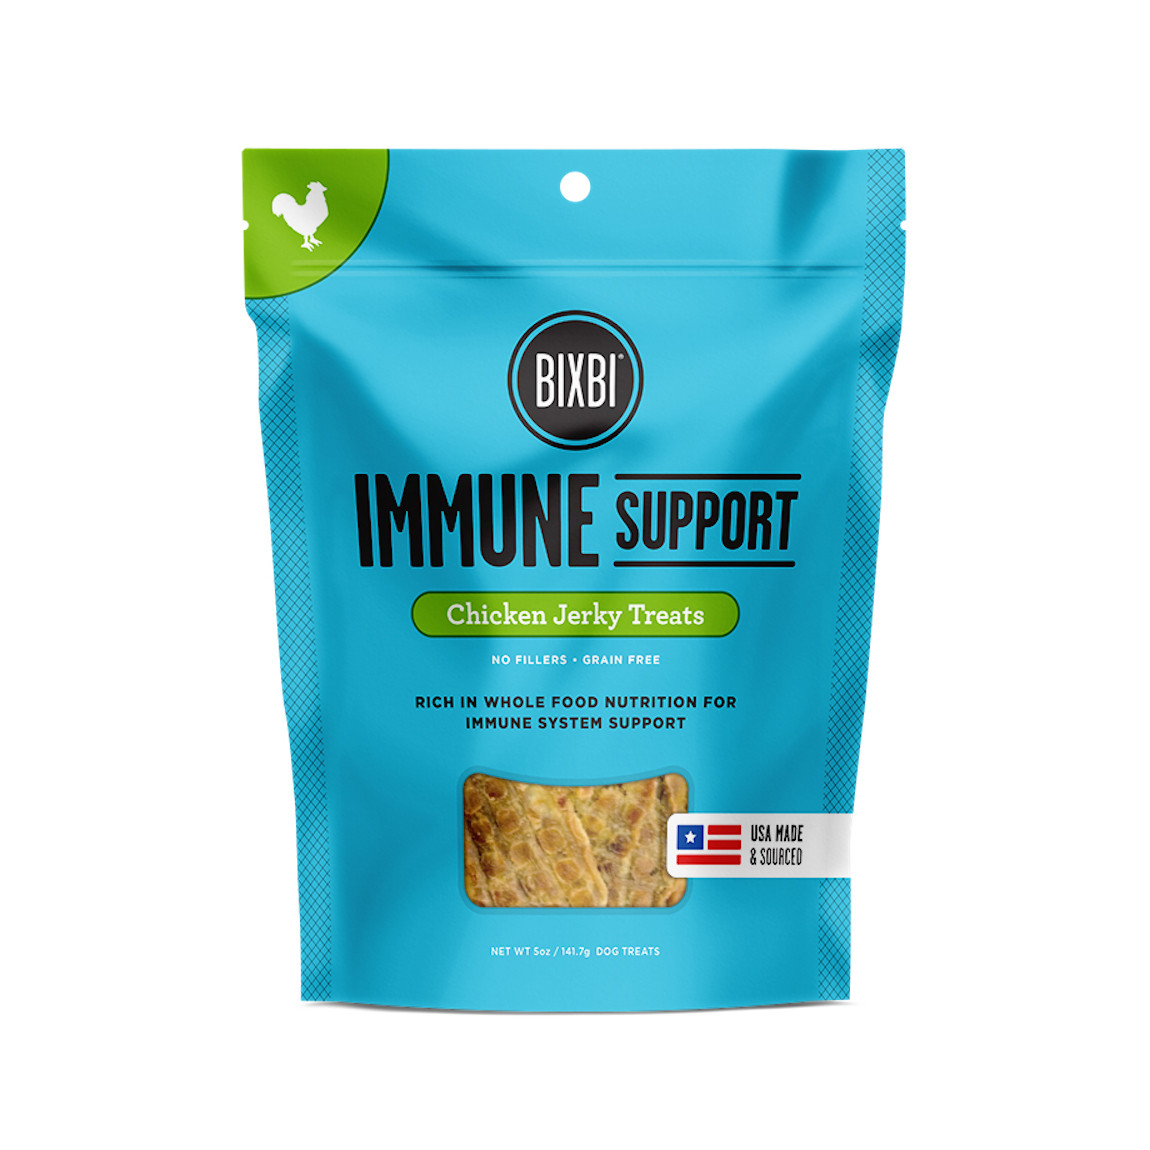 click here to shop Bixbi Immune Support Chicken Jerky Dog Treats